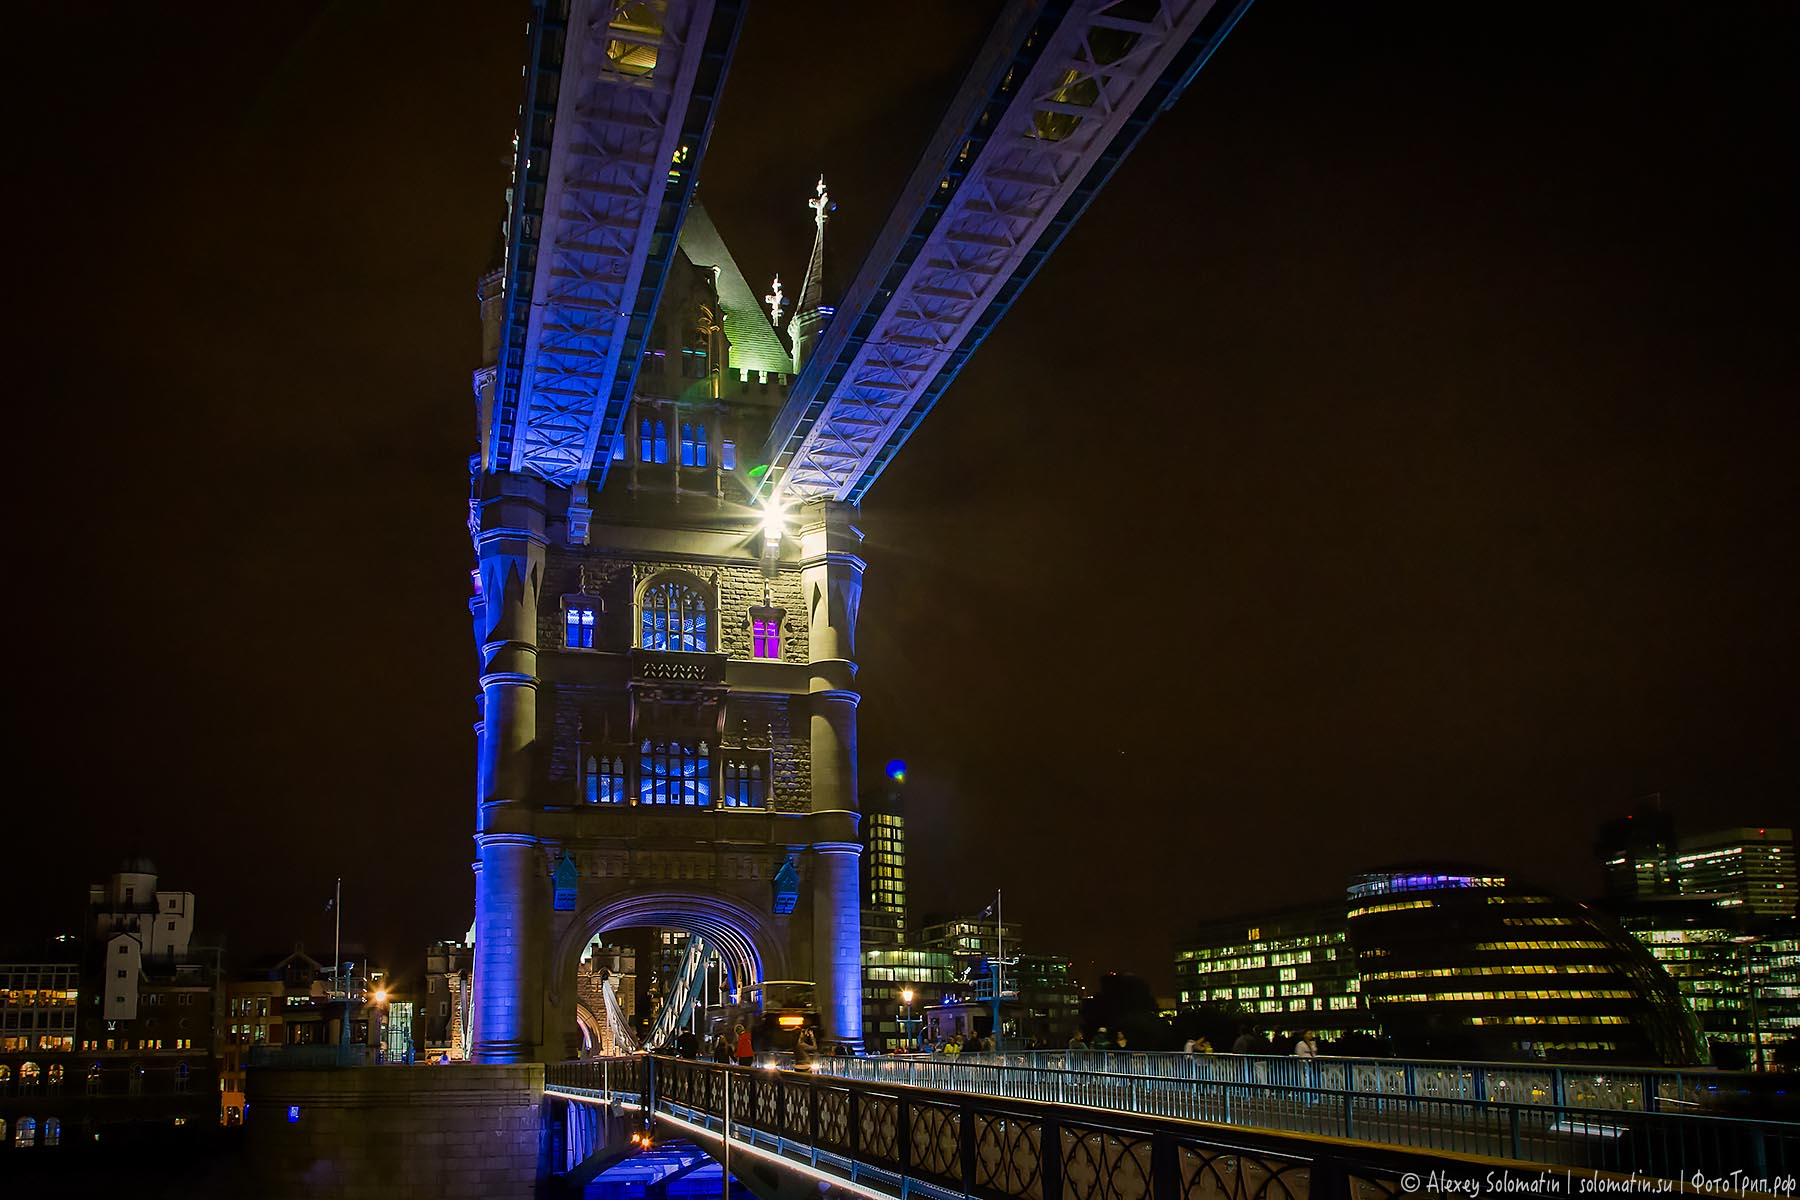 Night London_03